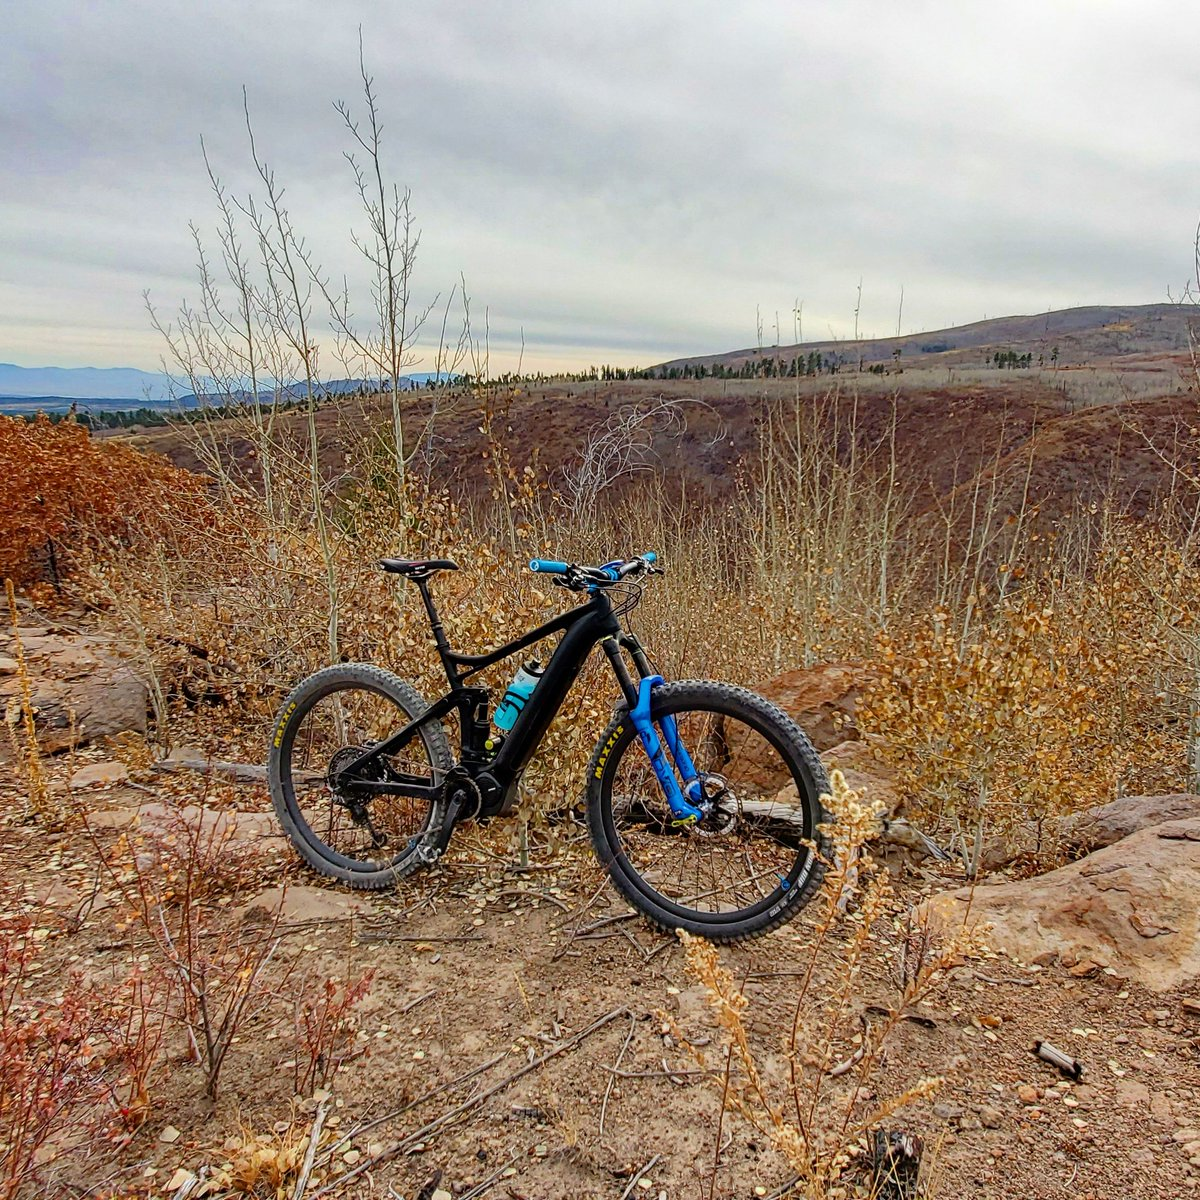 Since it is snowing outside, here is the E160FS before it started snowing in November. #mountainbike #ebike #ebikes #emtb #bike #ride #mountainbiking #cycling #savetheworld #ridebikesbehappy http://grvtwrx.com pic.twitter.com/DXbSHXoFNg